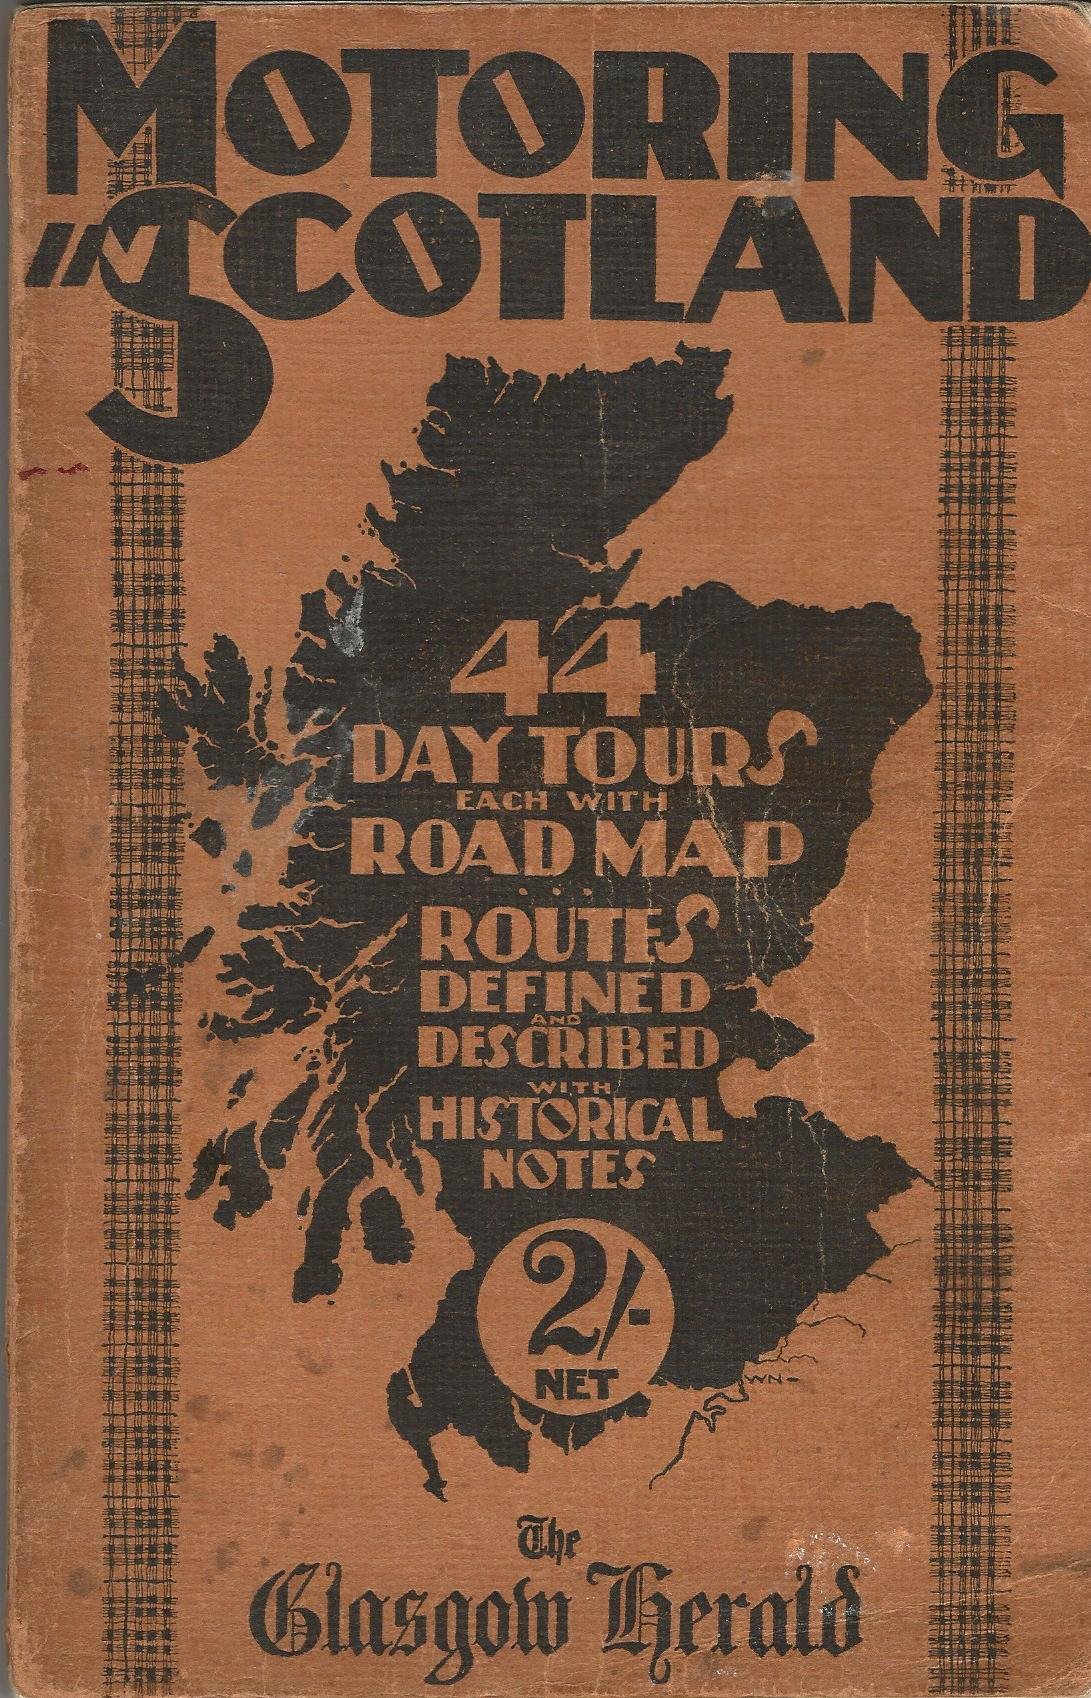 Image for Motoring in Scotland: Touring Guide.